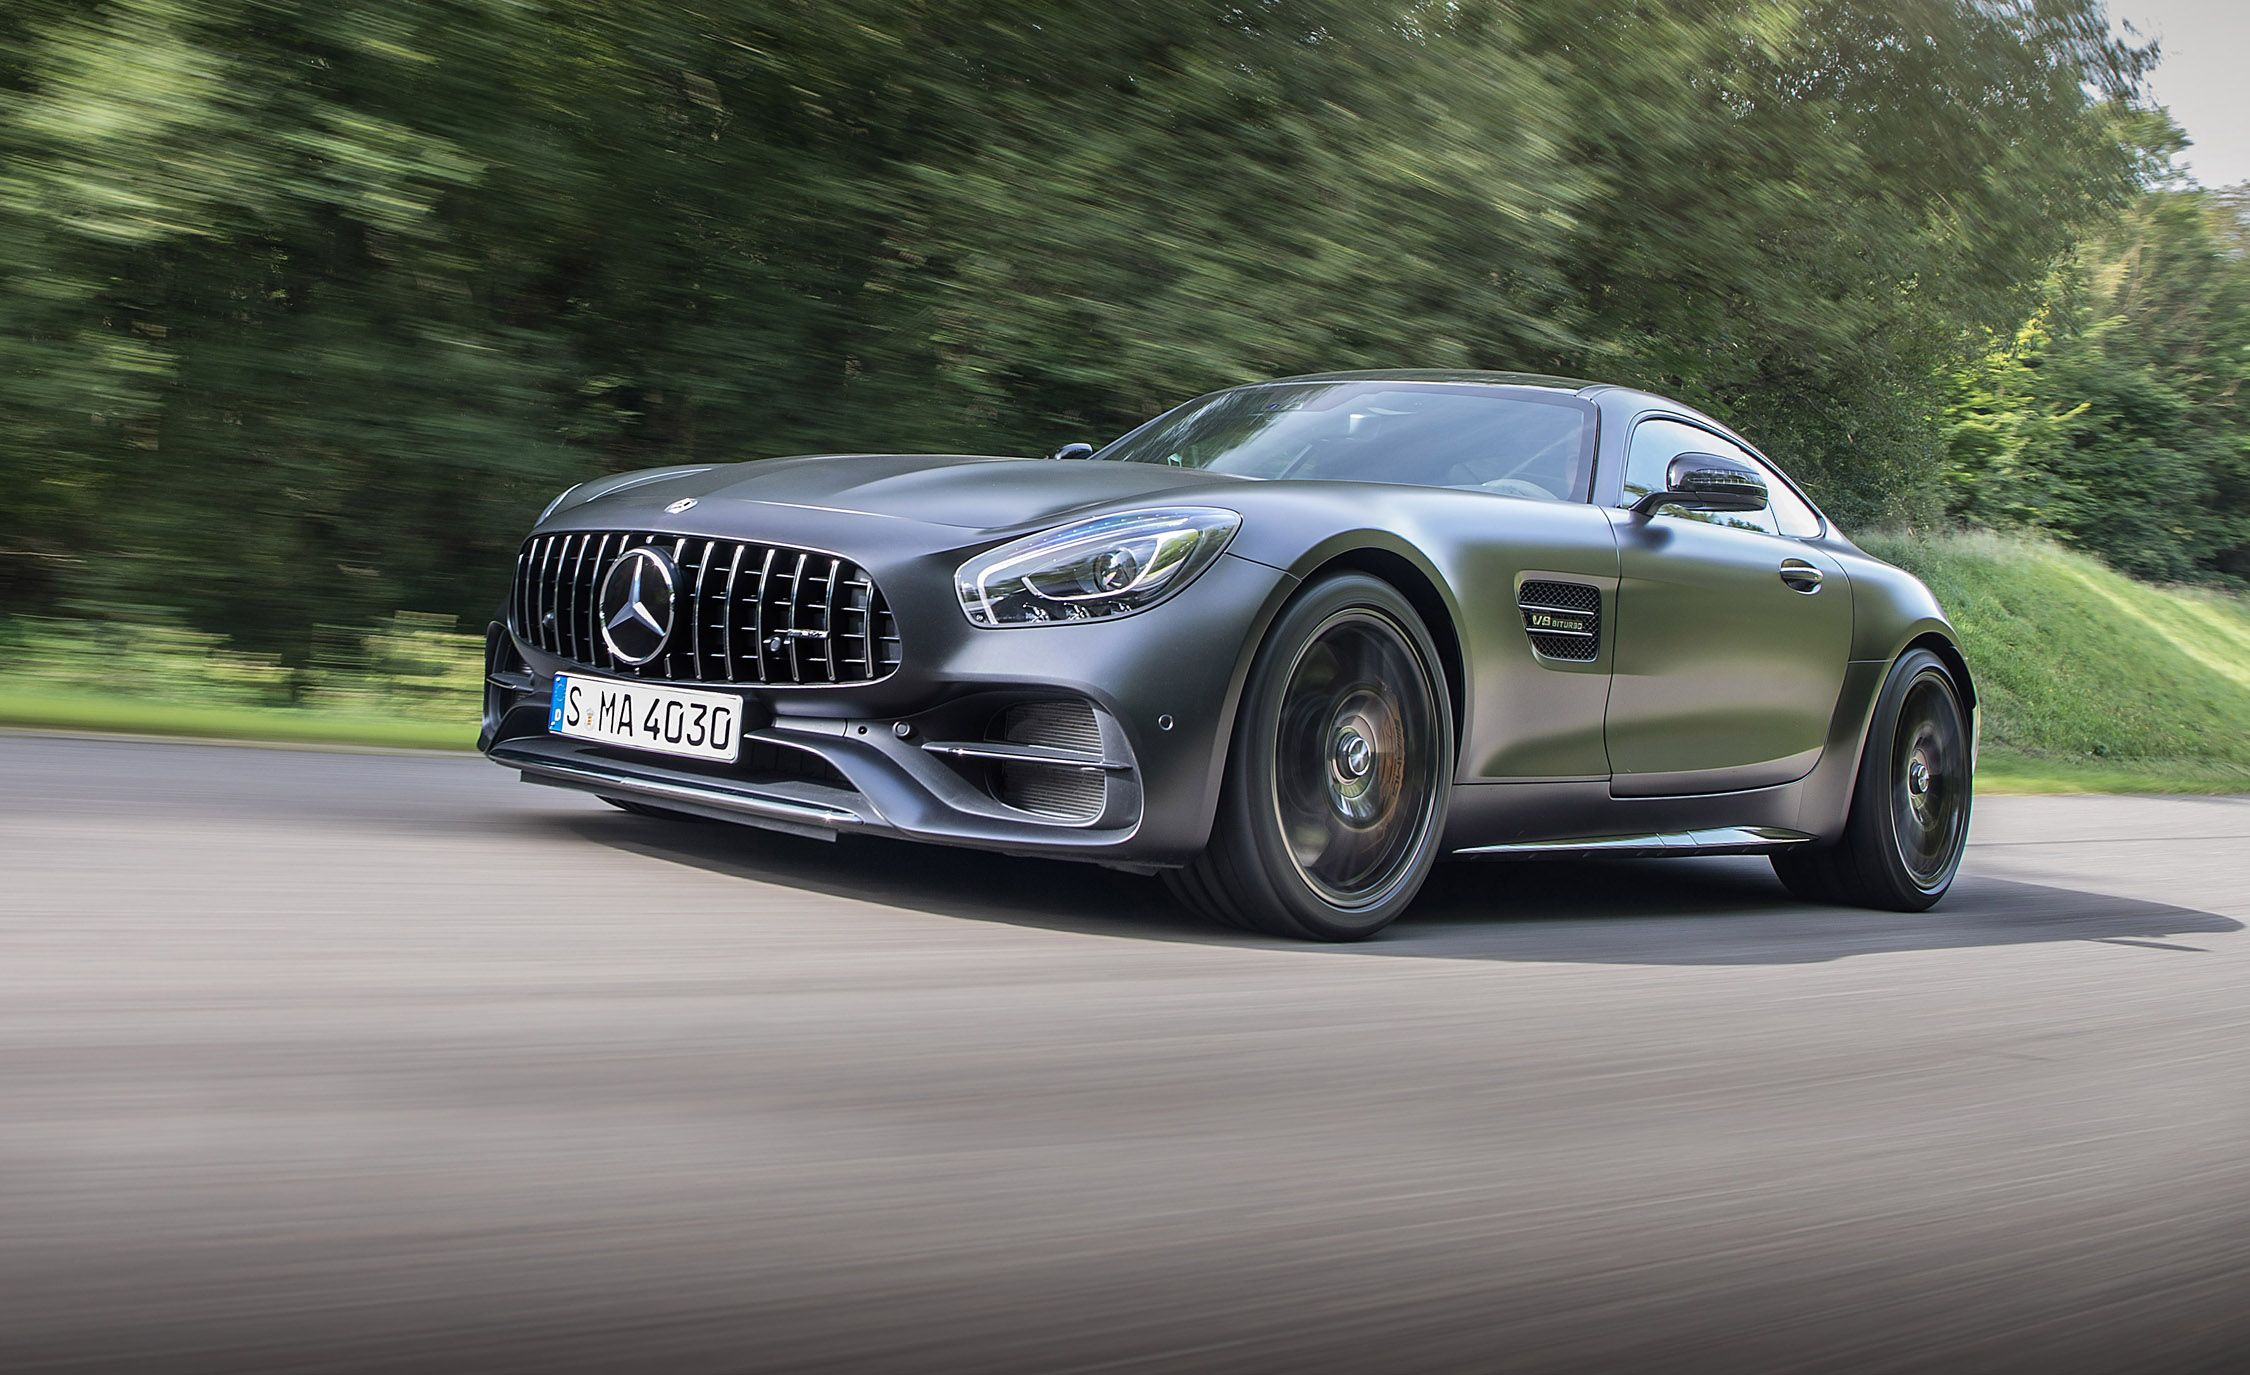 2018 Nissan Sports Car >> 2018 Mercedes-AMG GT C Coupe First Drive | Review | Car and Driver